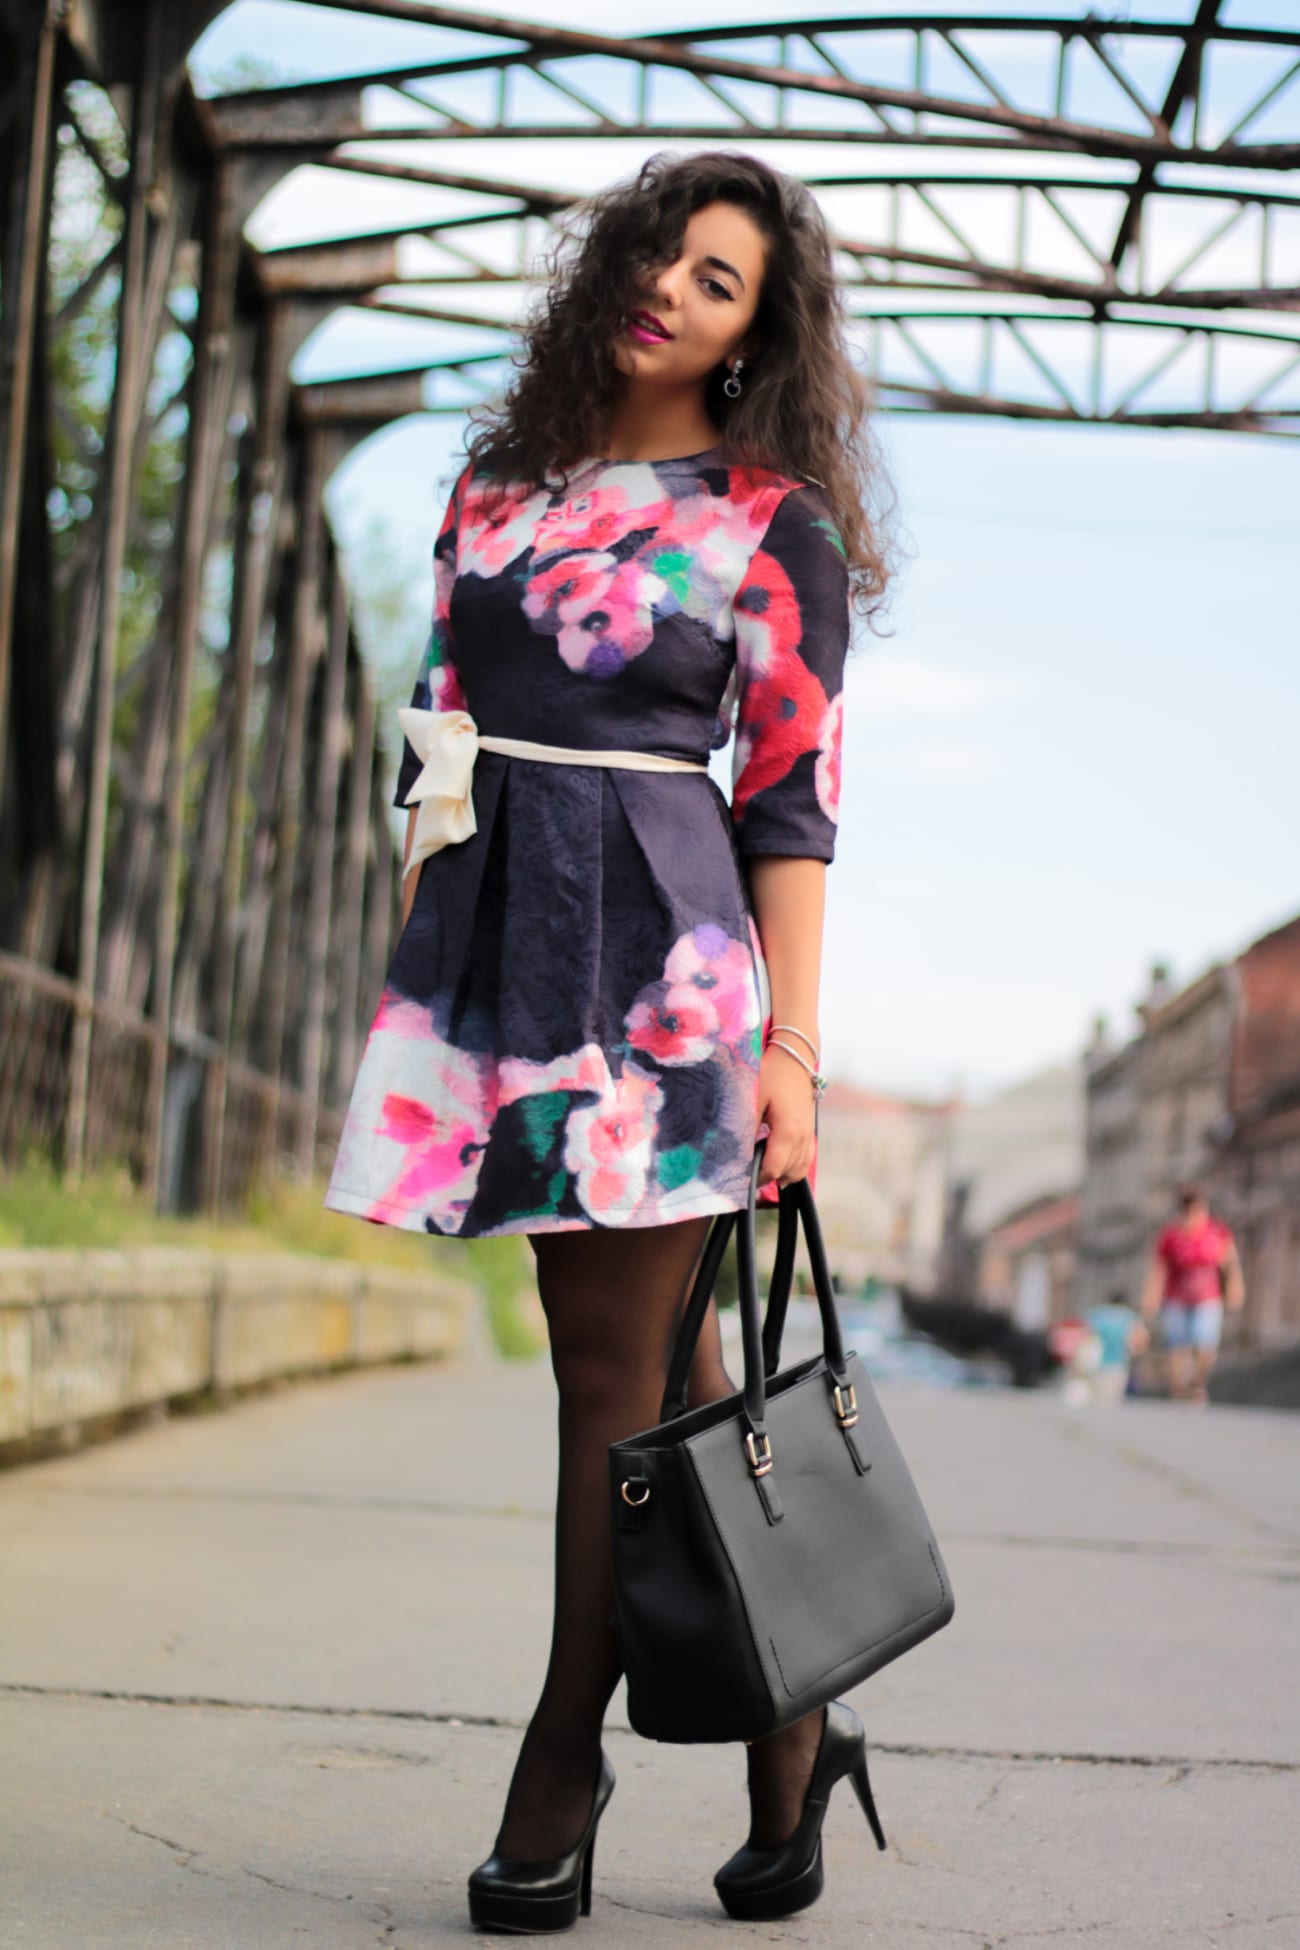 top-fashion-pareri-roxi-rose-timisoara-fashion-blogger-rochia-cu-flori-floral-dress-review-favorite-fashion-item-and-why-clothing-piece-